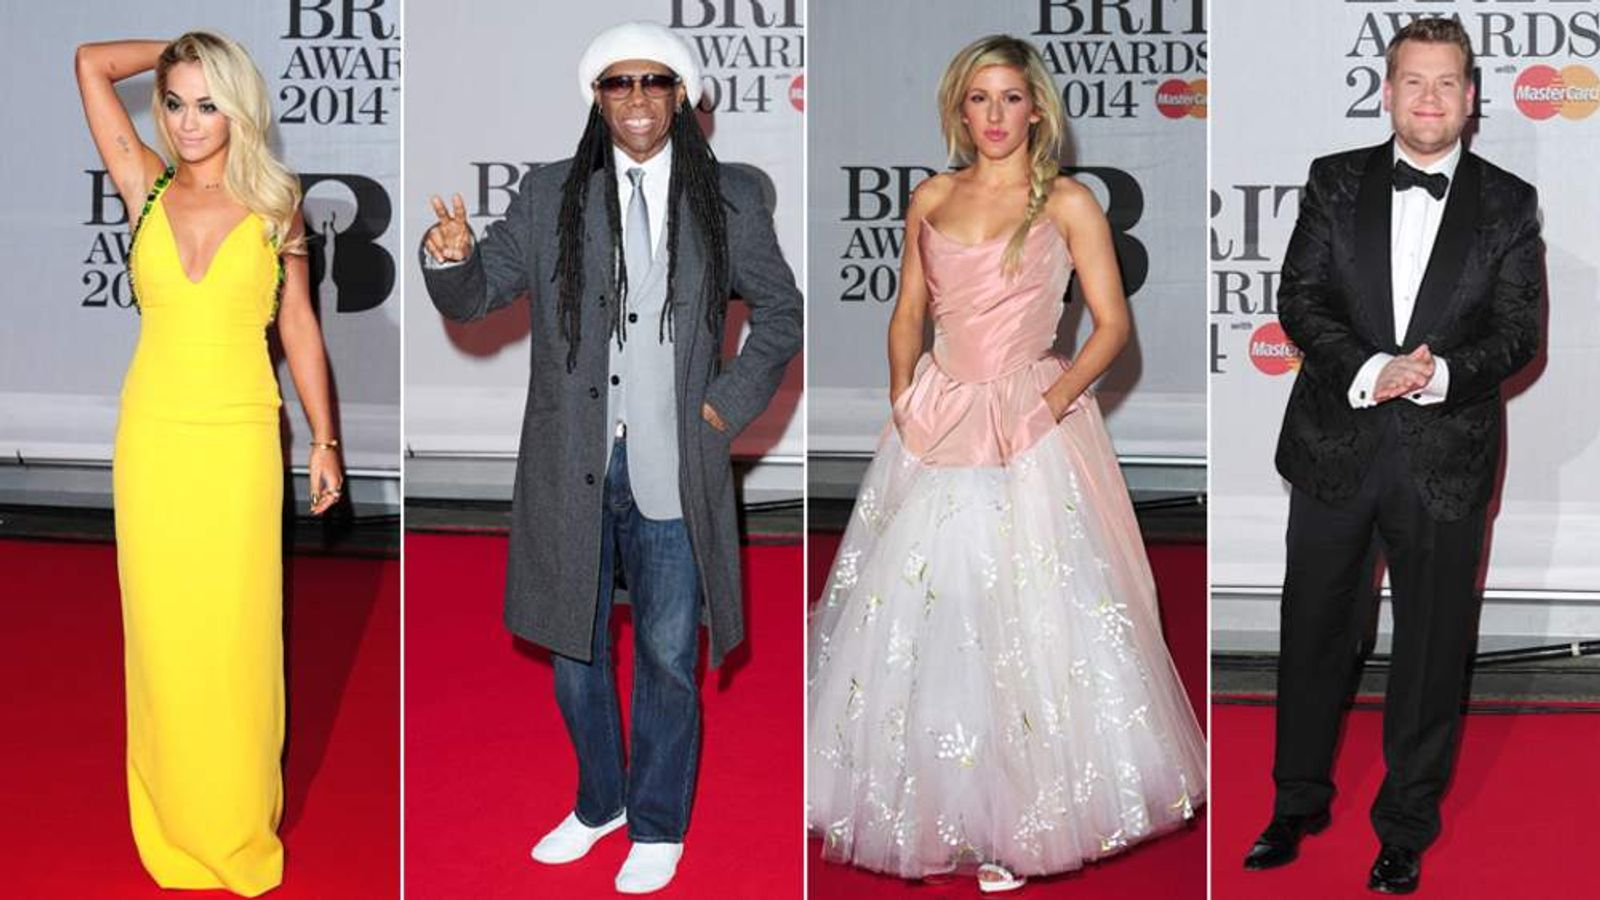 Rita Ora, Nile Rodgers, Ellie Goulding and James Corden